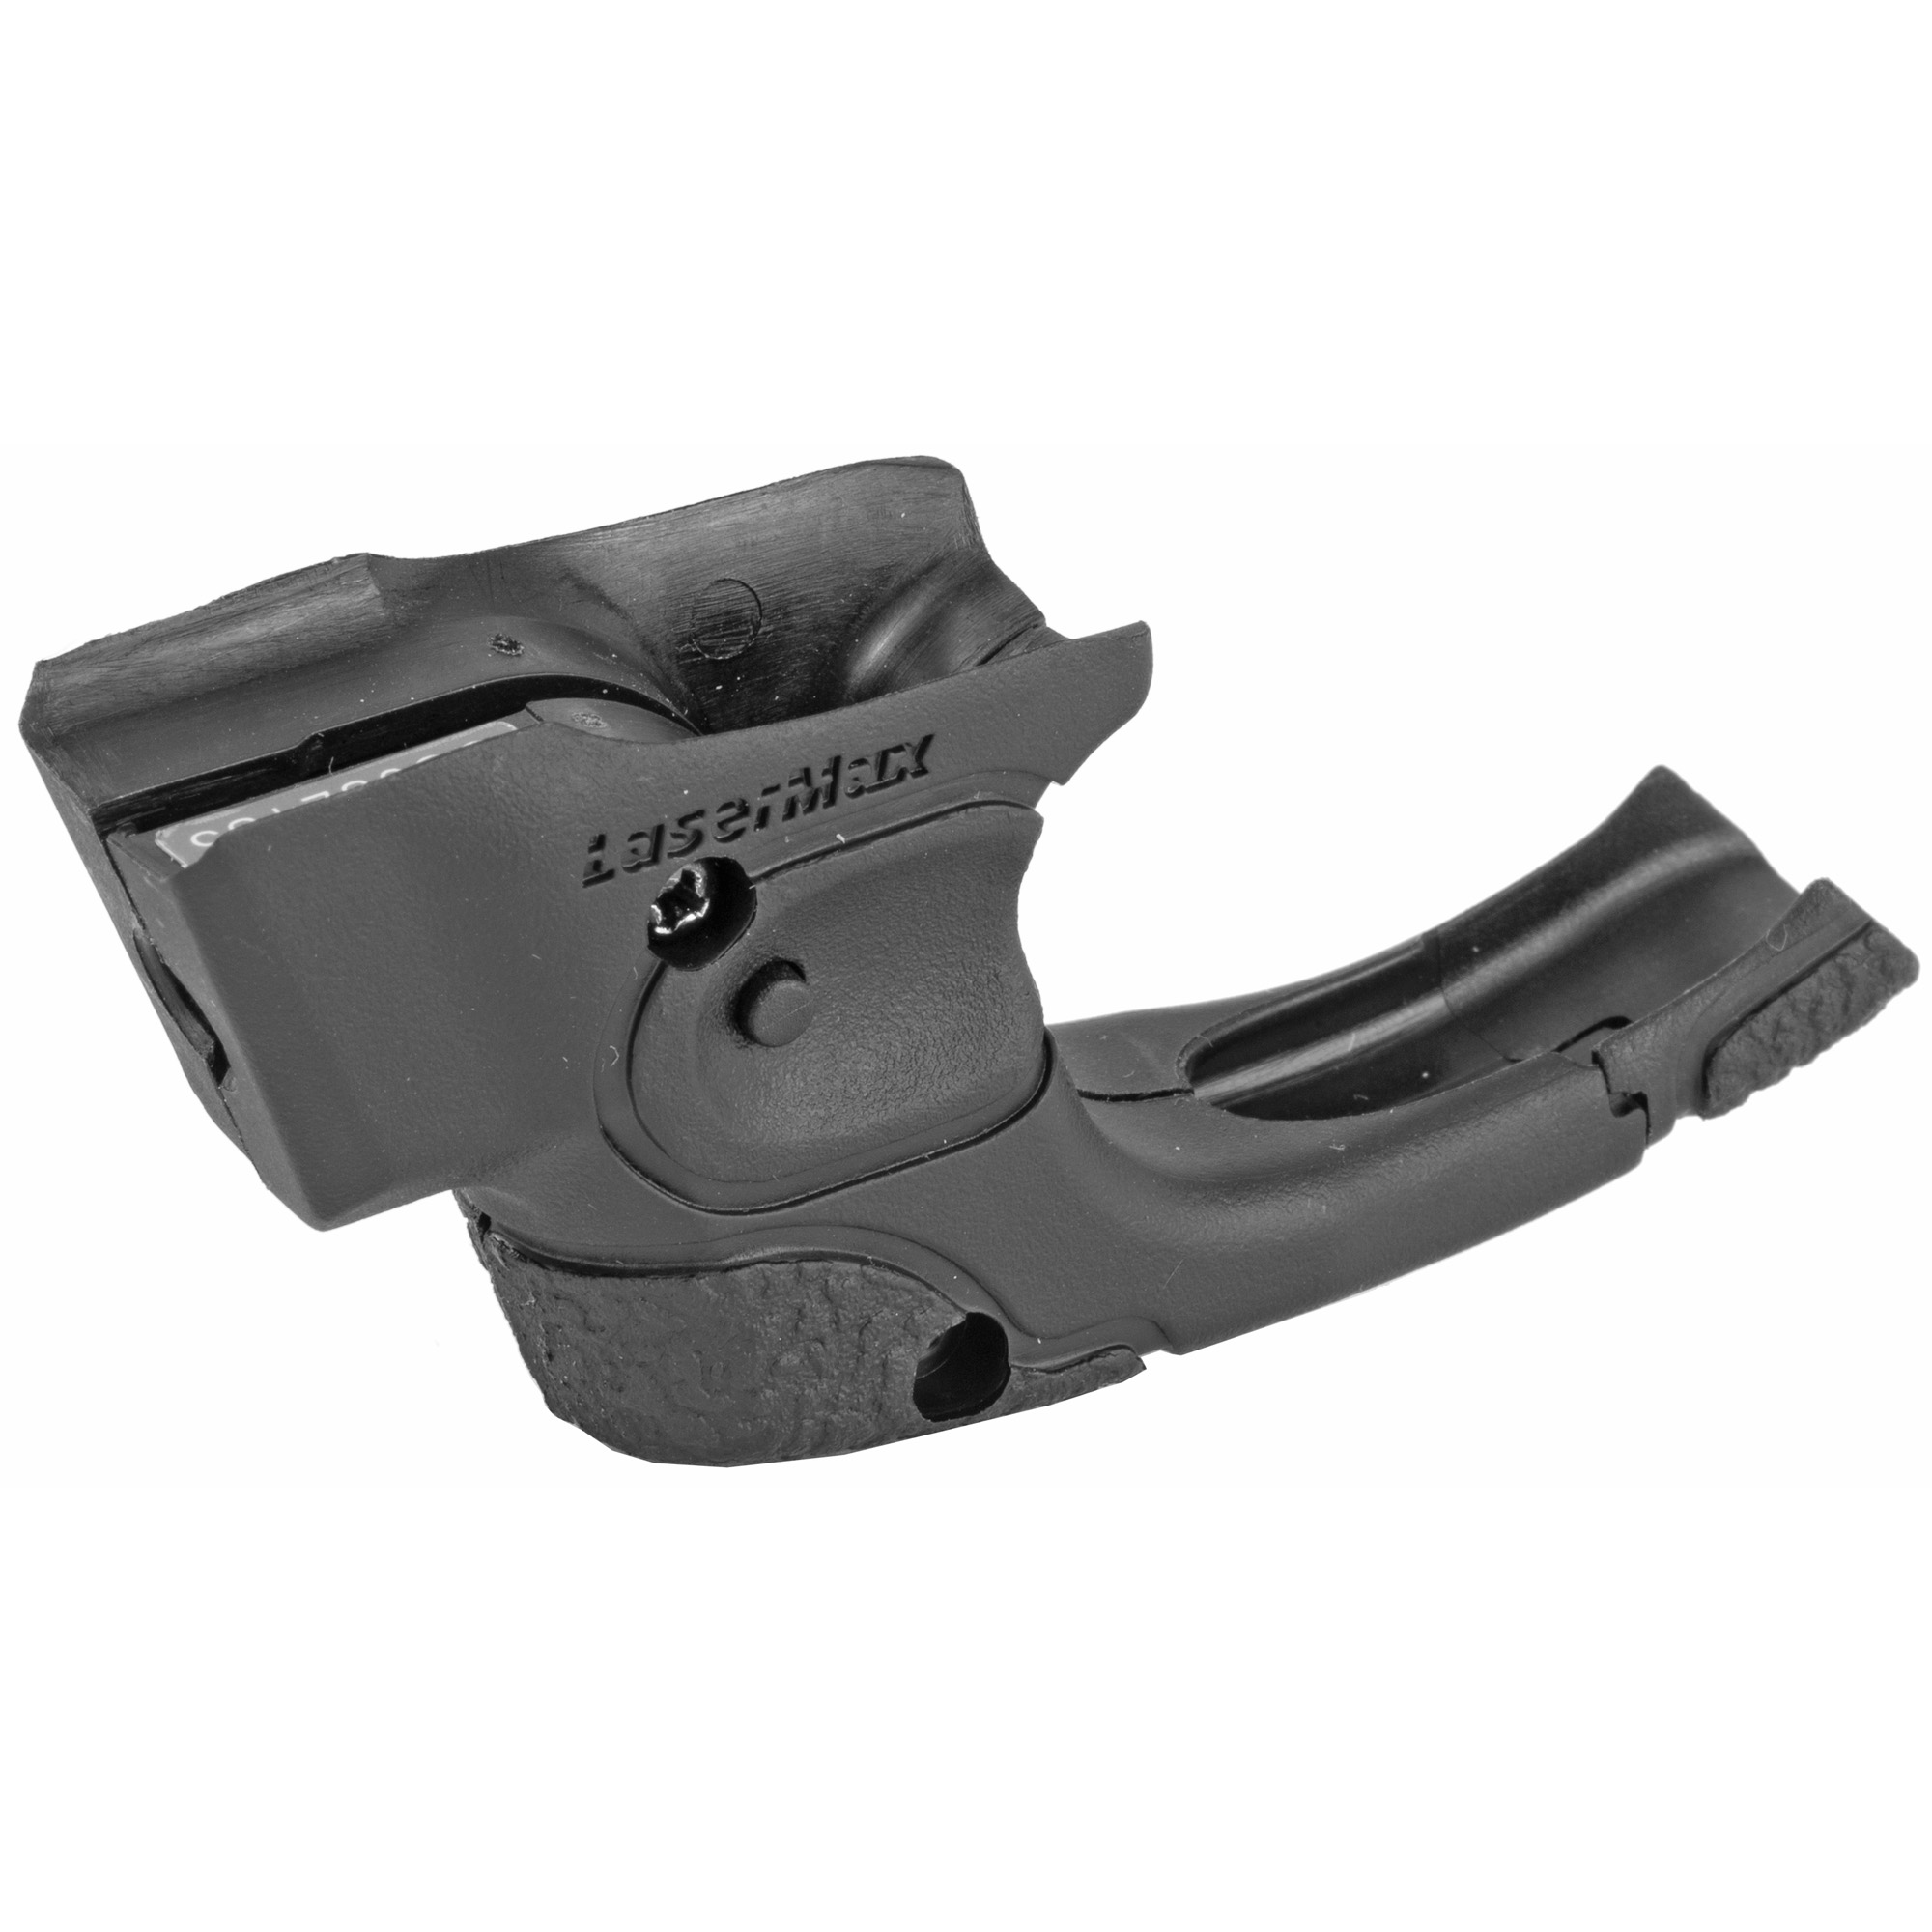 """An essential sighting tool for training"""" concealed carry"""" home defense"""" and backup use"""" the CF-SHIELD projects a bright red aiming point downrange - the perfect complement to Smith & Wesson's small and easily concealed M&P Shield pistol. Rounded and blended to ensure a smooth draw"""" the CF-SHIELD mounts to the frame without permanent alteration and offers ambidextrous switching to accommodate both right and left-handed shooters. Most operators report immediate improvement to hit ratios after installing a CenterFire laser sight."""